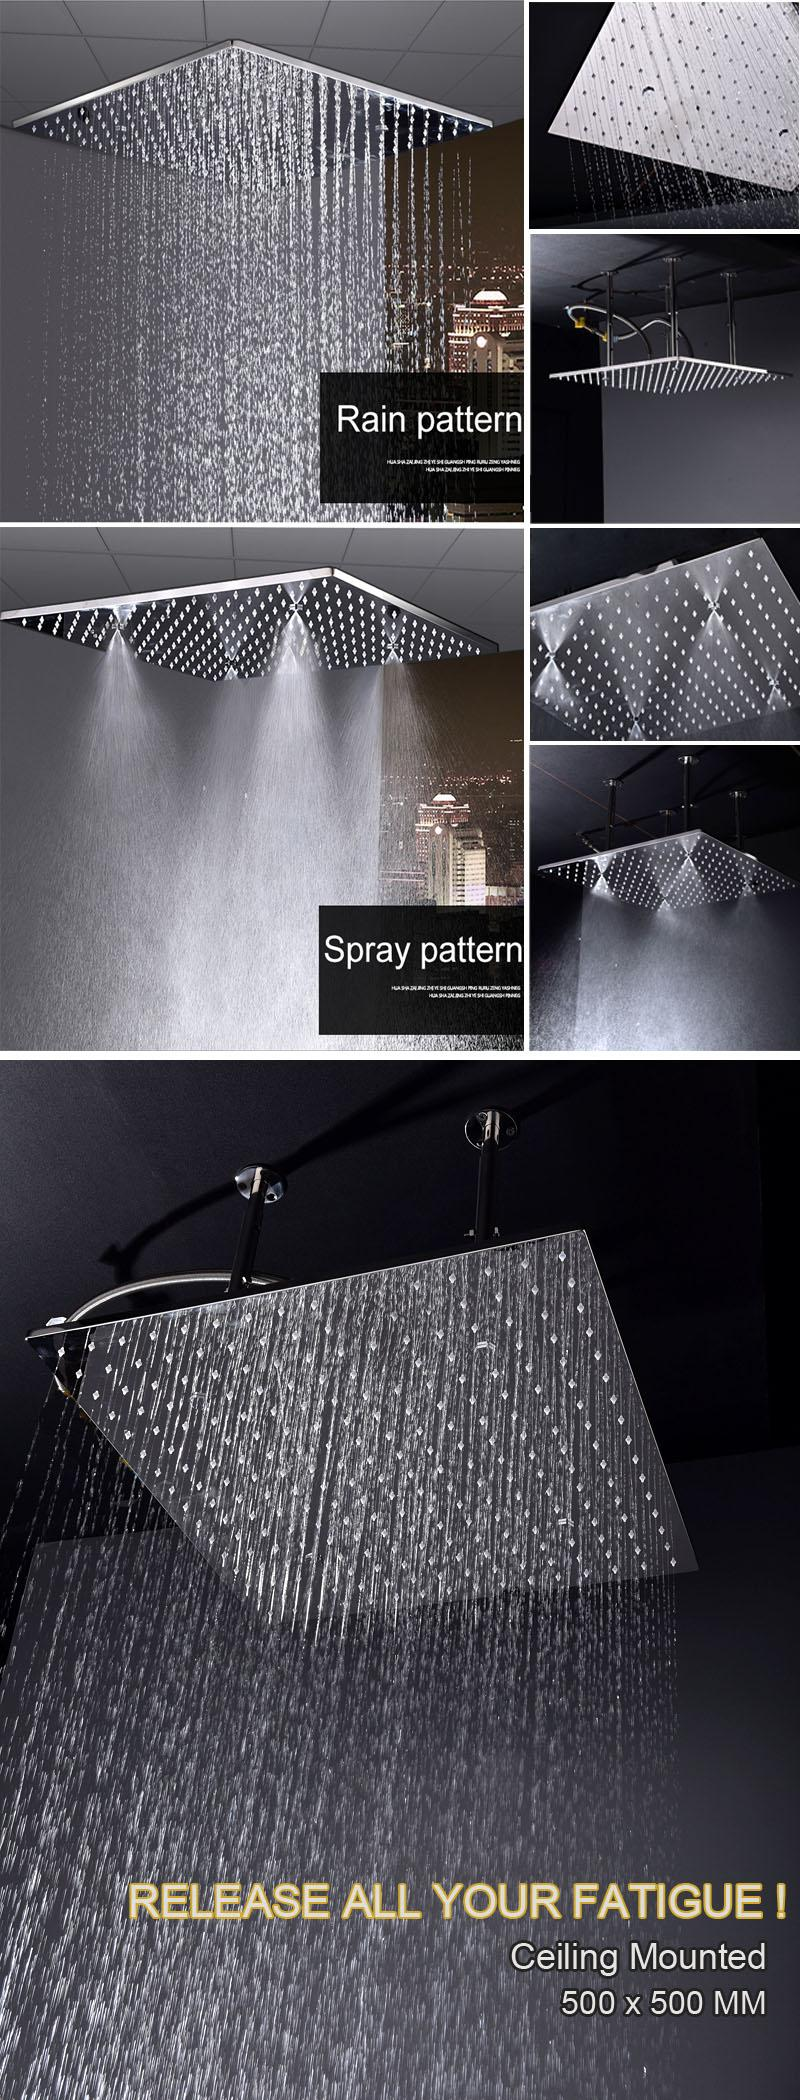 2019 2018 Modern Shower Panel System Big Rainfall Overhead Spa Showerhead Thermostatic Shower Faucets Ceiling Mounted Bathroom Products From Jmhm